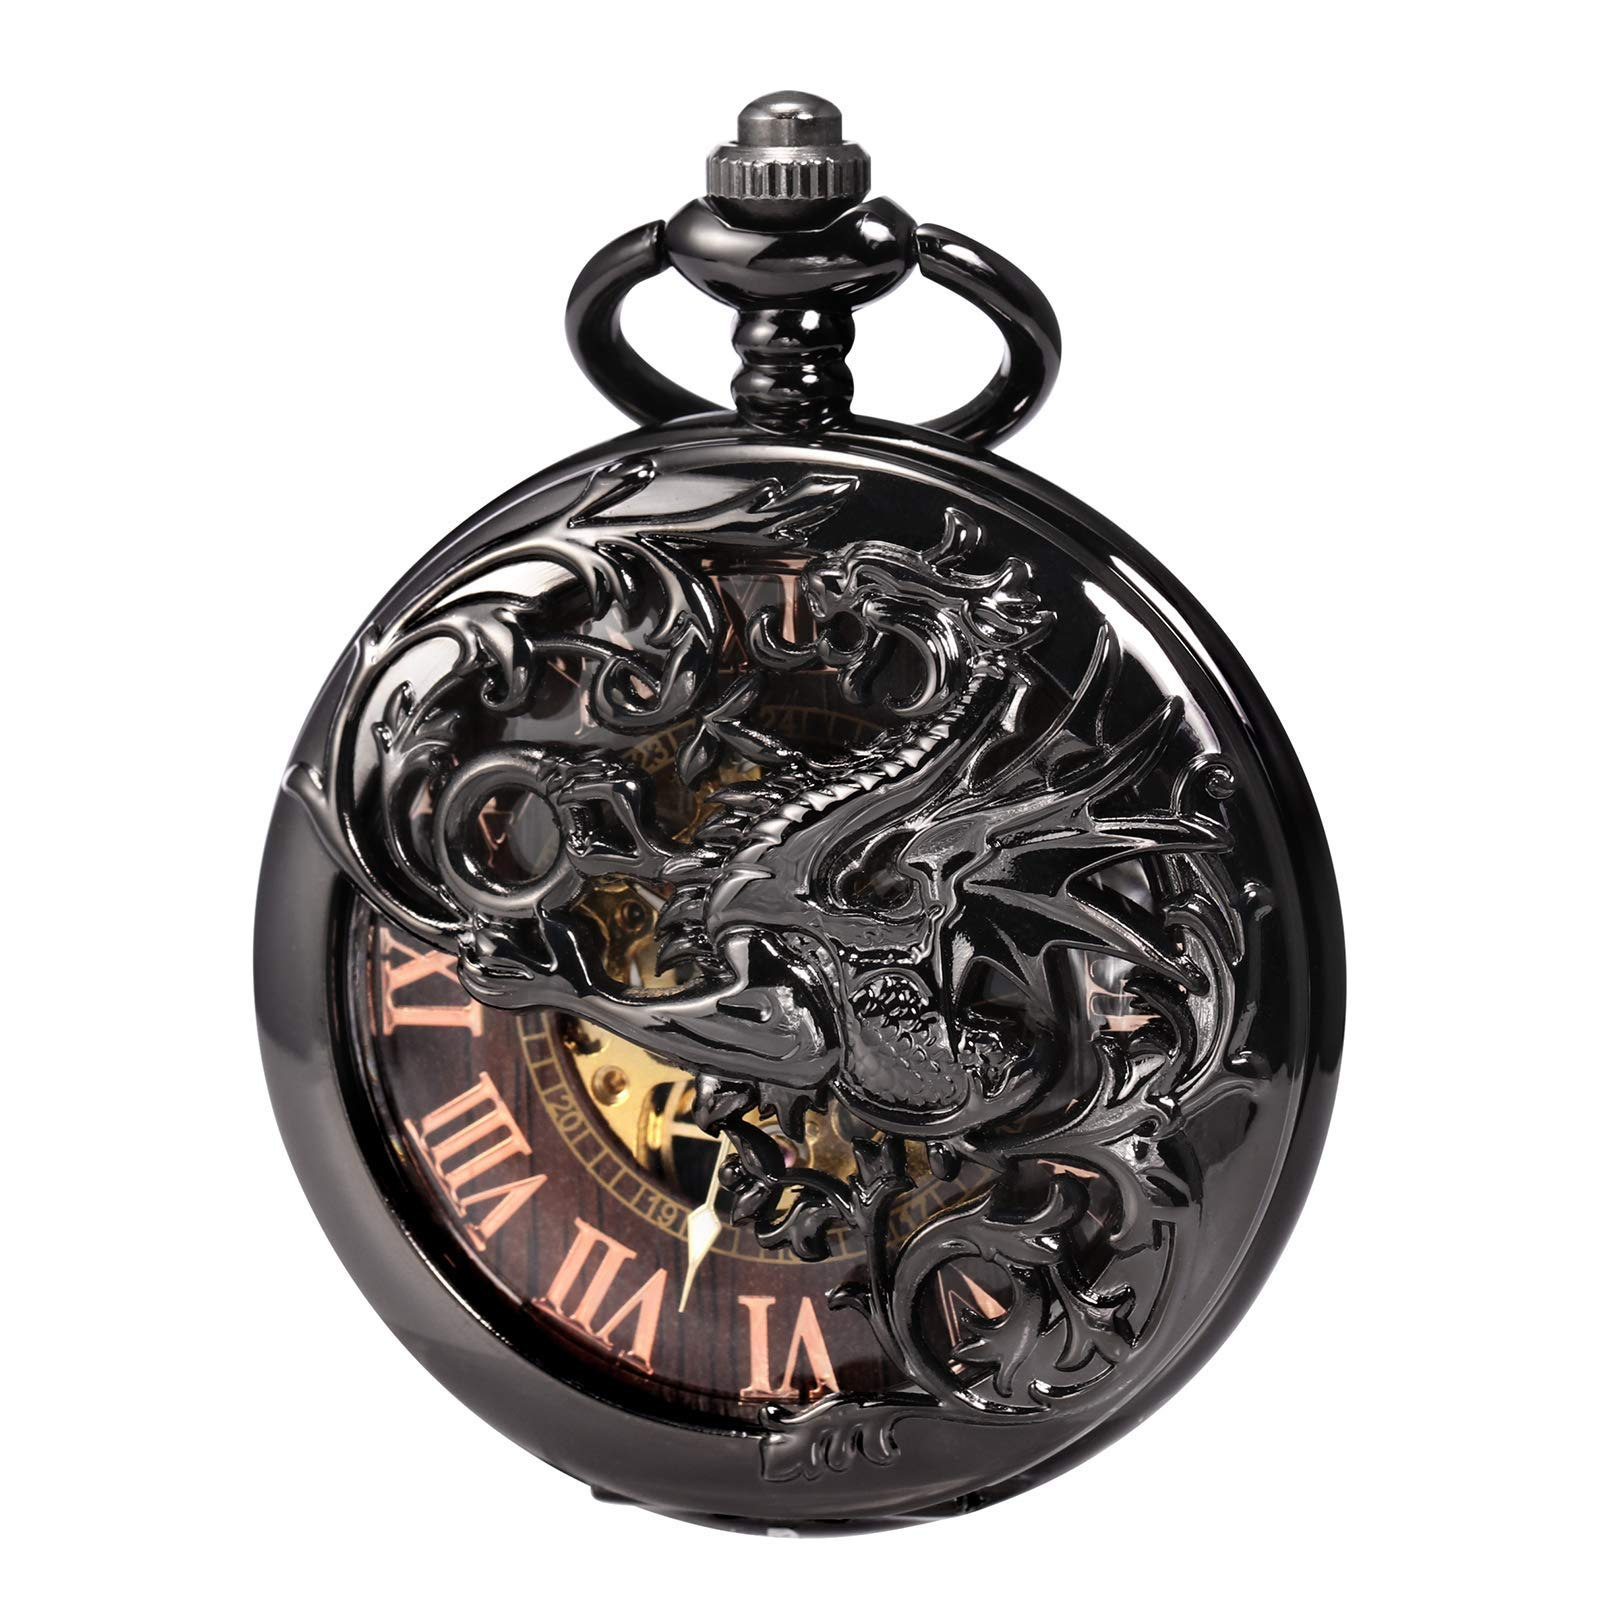 Treeweto Antique Dragon Mechanical Skeleton Pocket Watch with Chain by TREEWETO